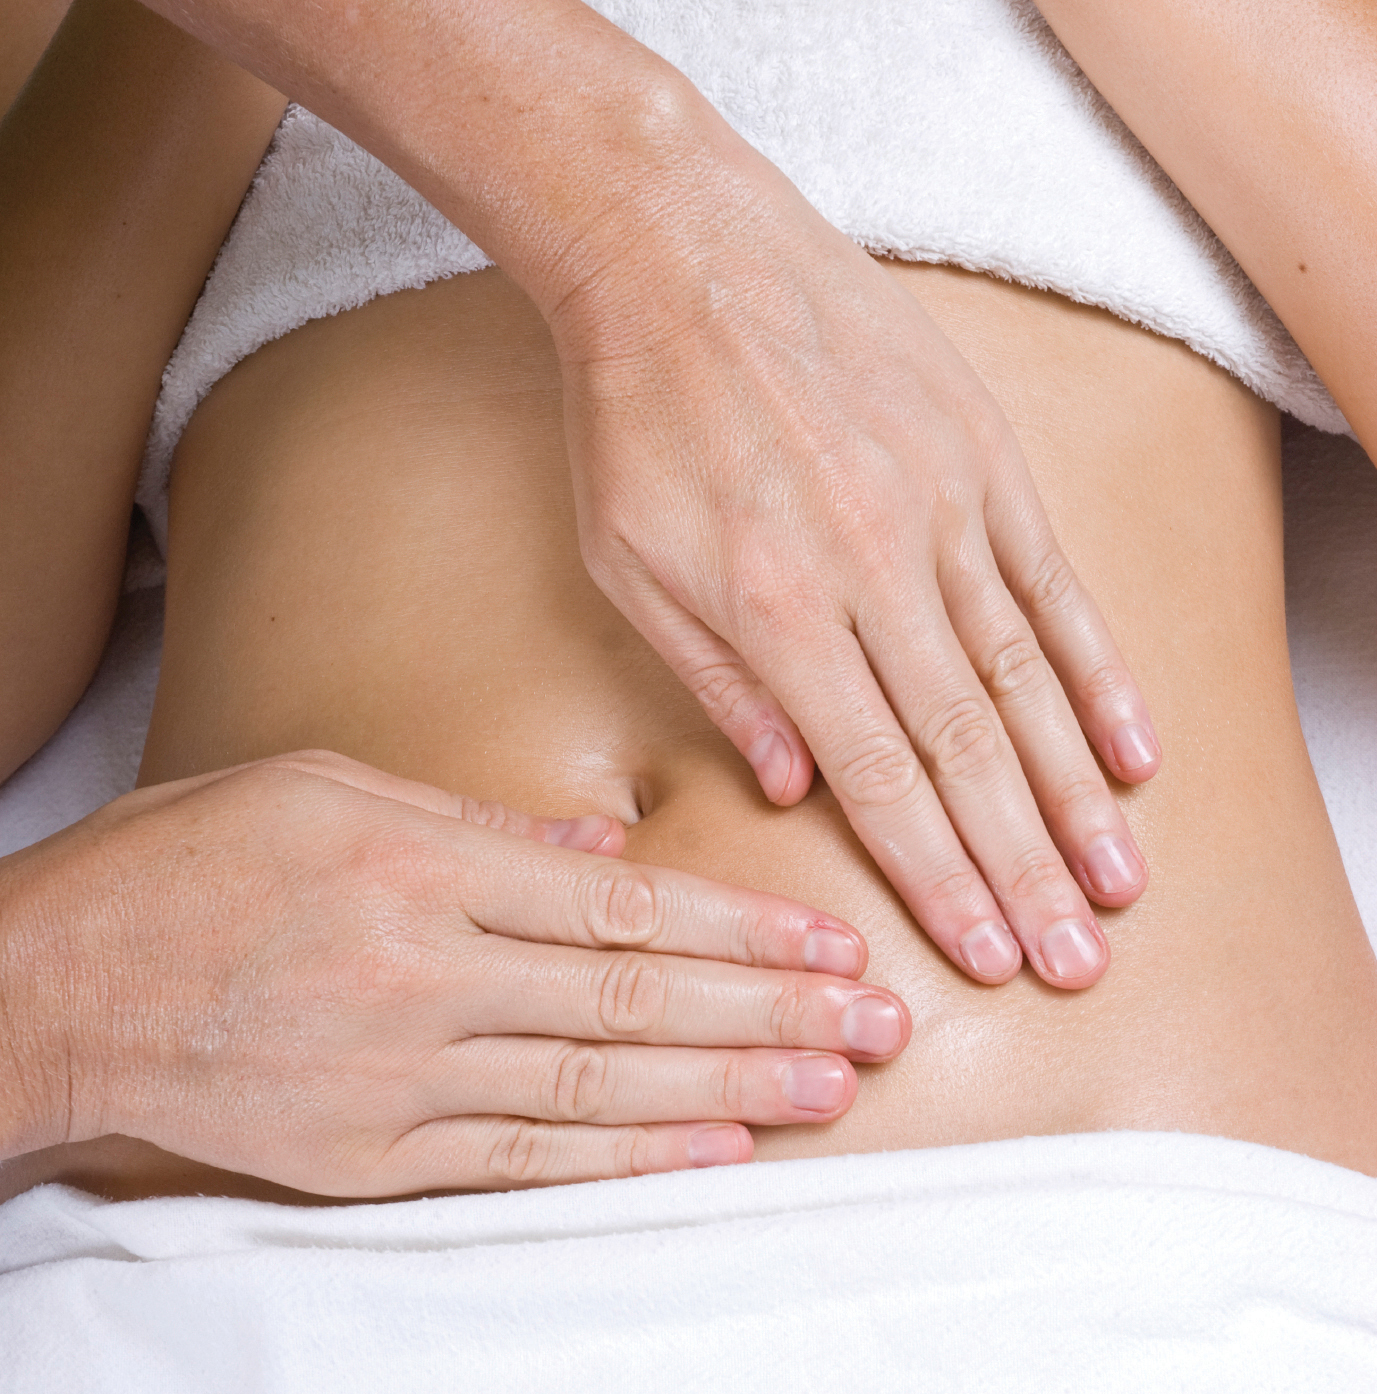 All guests on the Health regime receive abdominal massage to aid and improve digestion